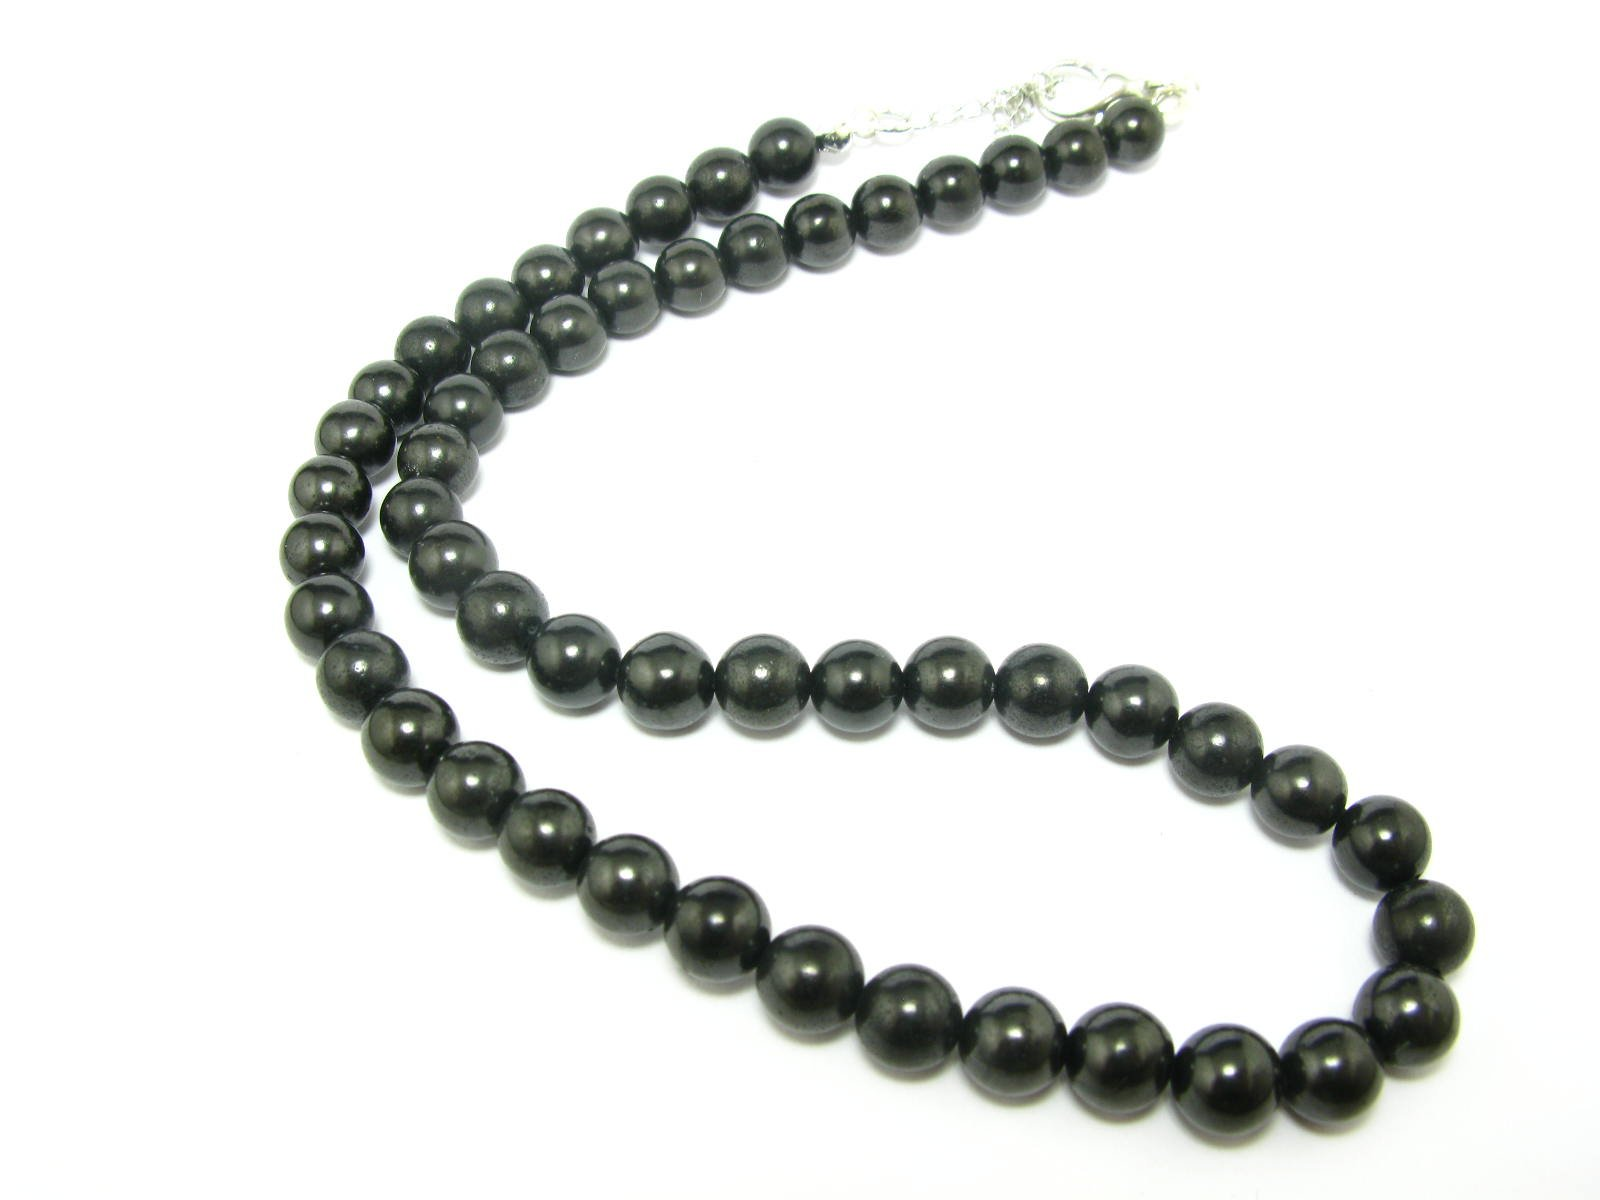 Shungite Necklace Beads From Russia - 8mm Round Beads - 18''